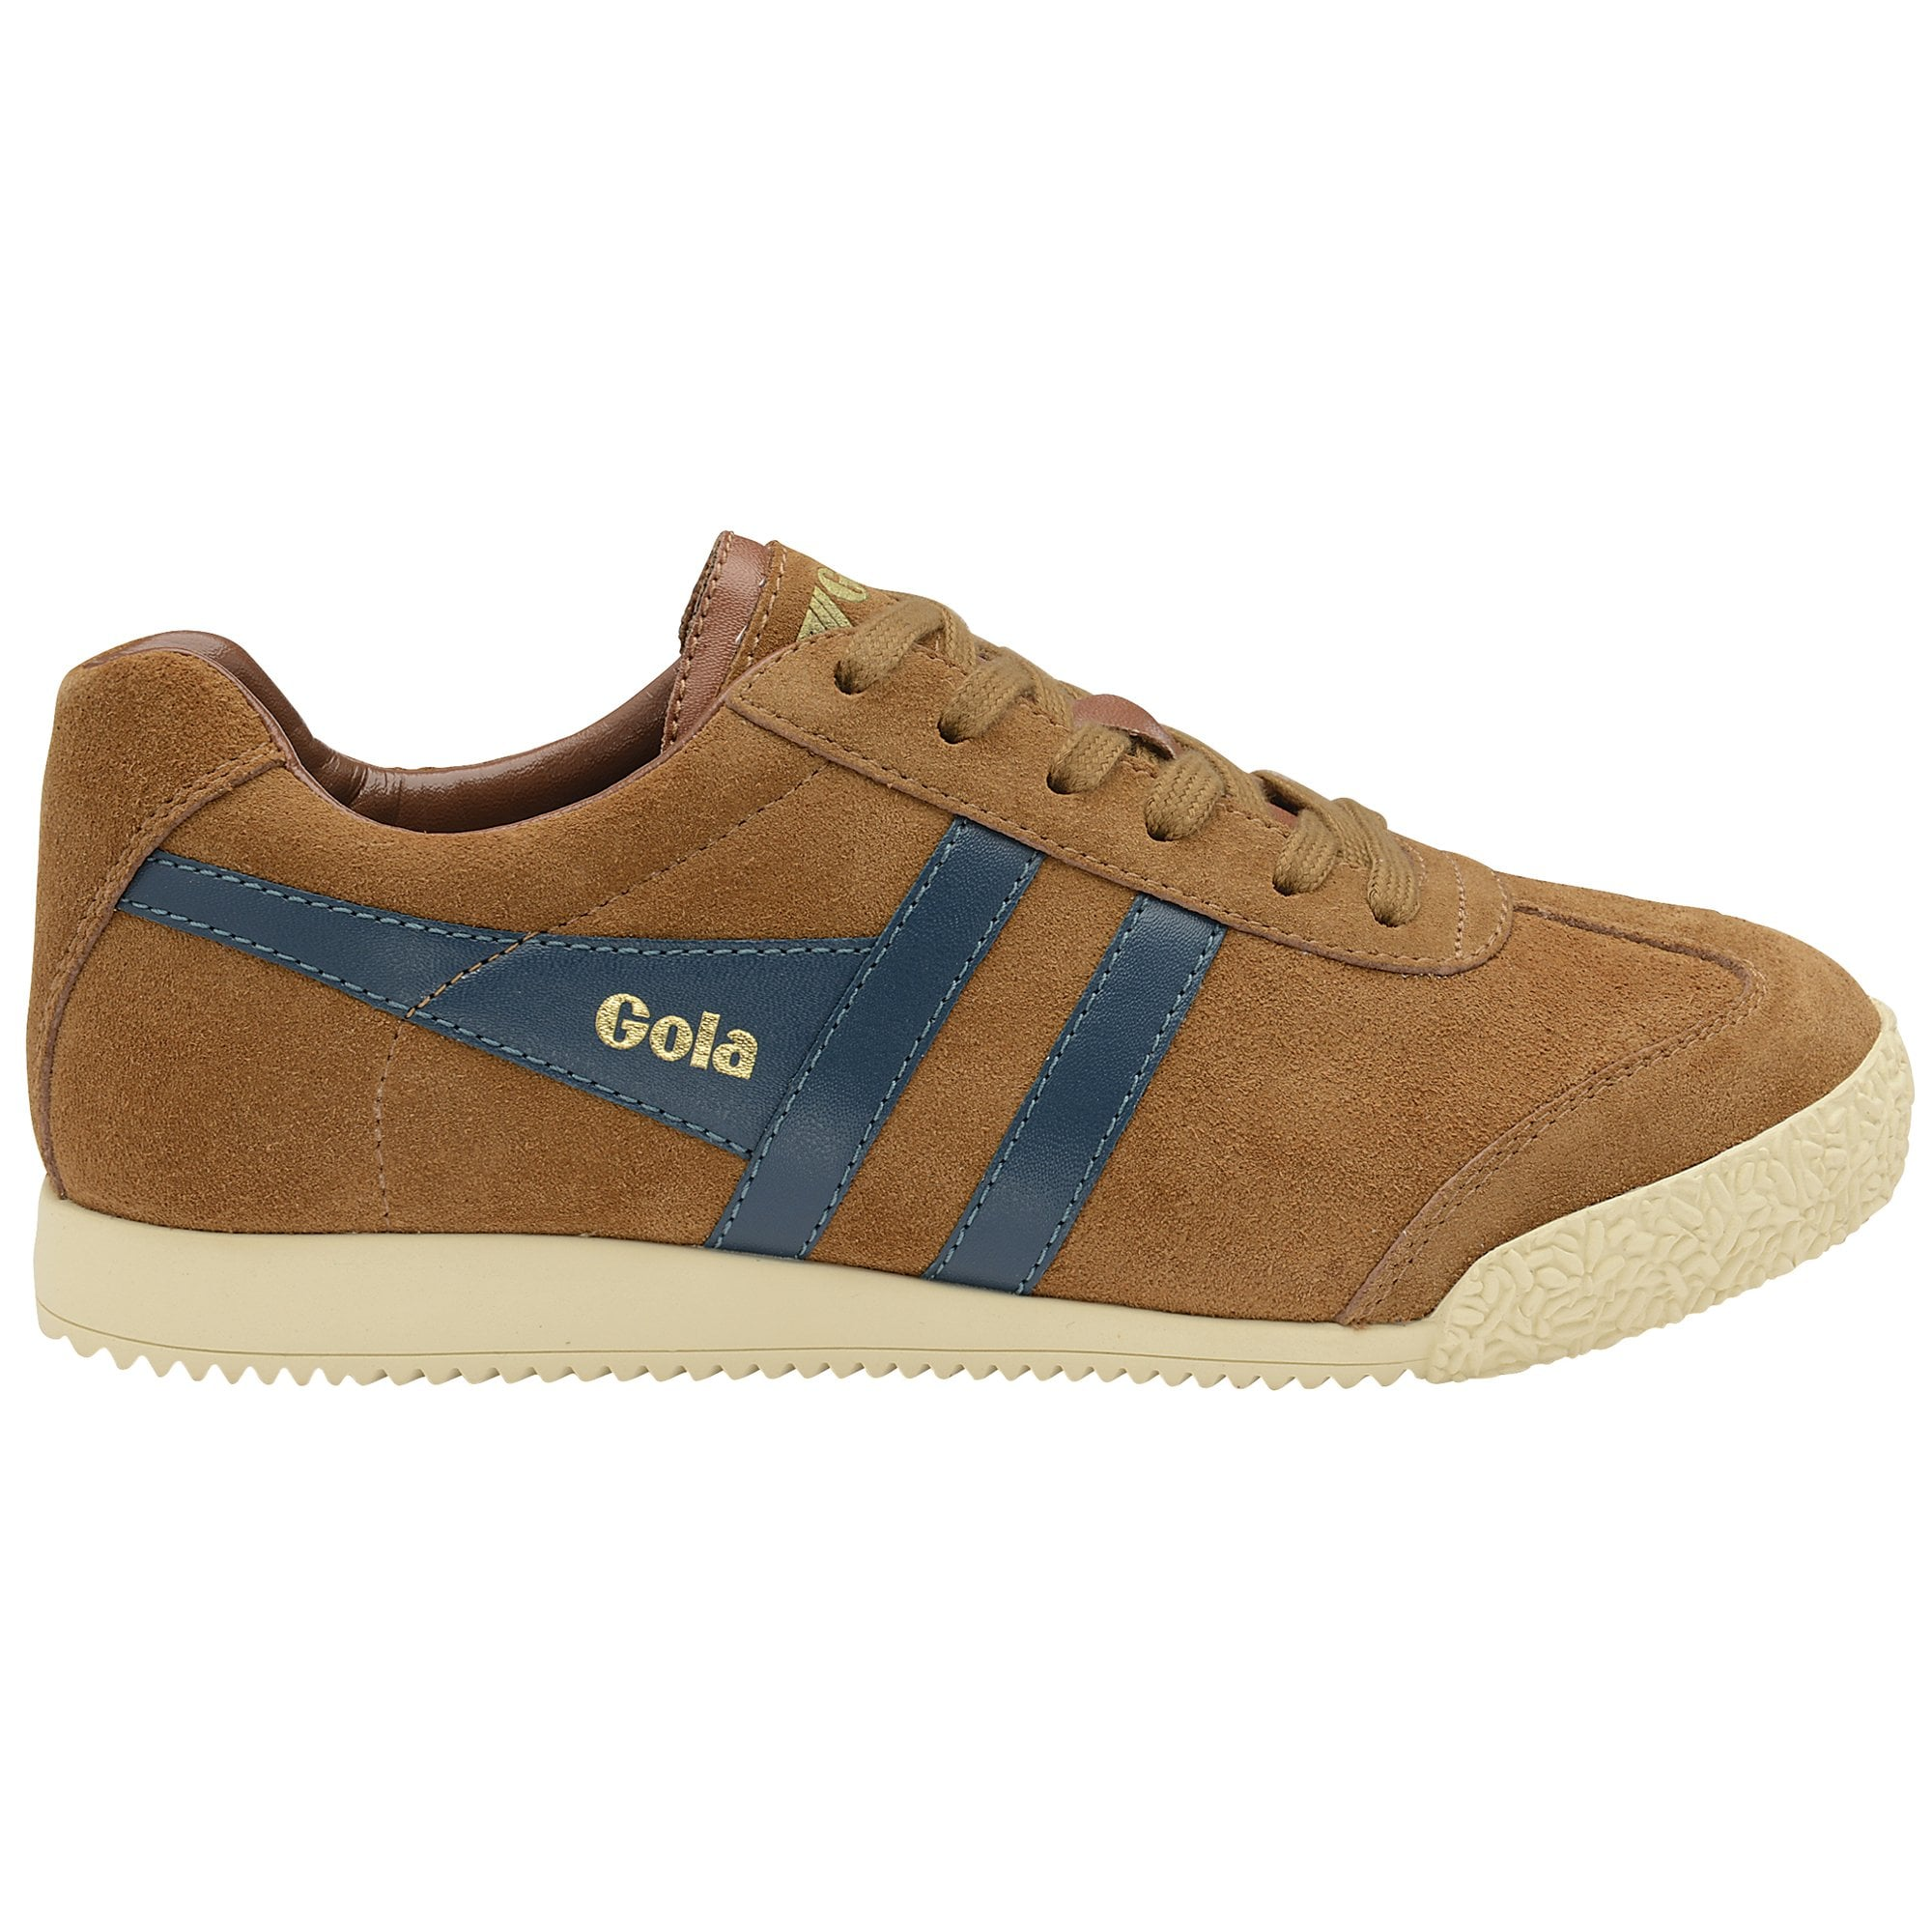 Buy Gola womens Harrier Suede trainers